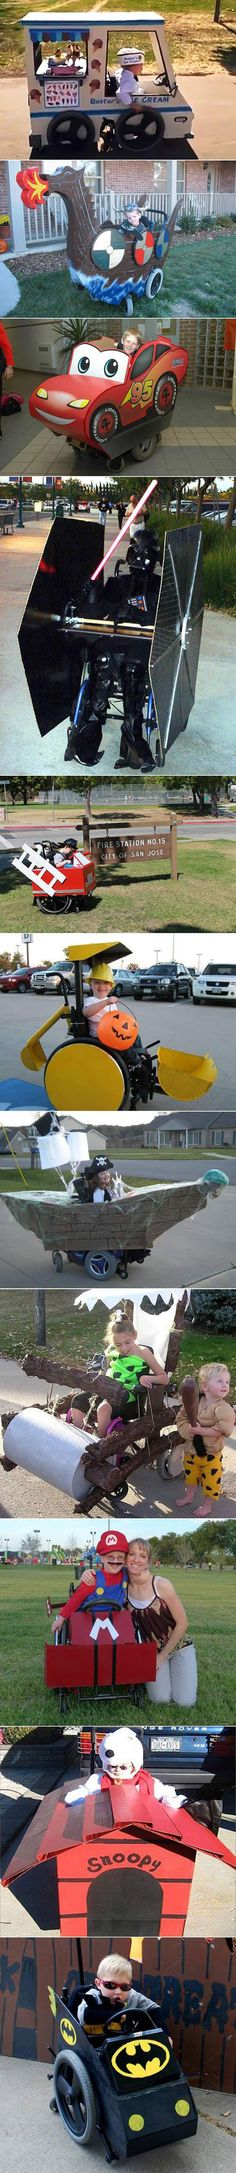 Awesome wheelchairs.